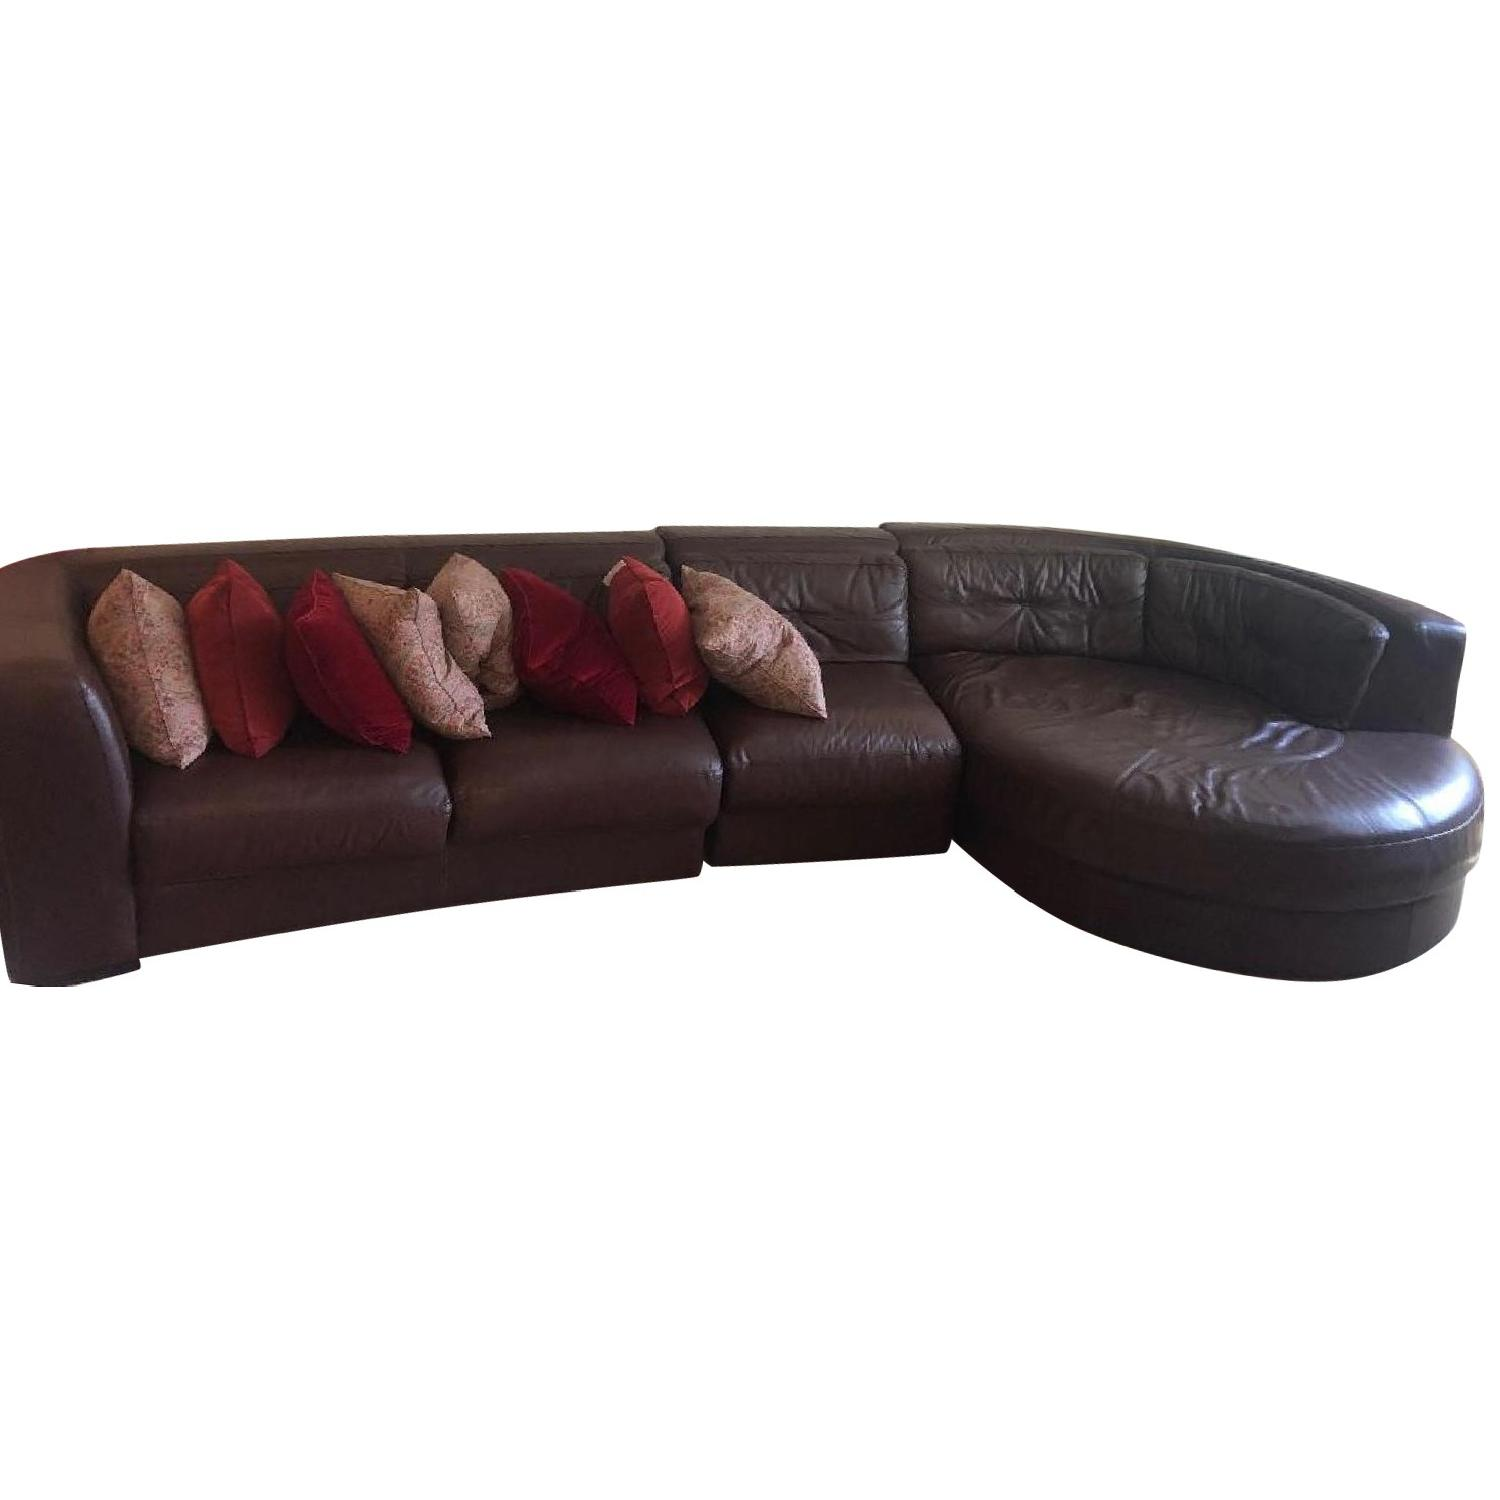 Raymour & Flanigan Austin 3 Piece Leather Sectional Sofa - image-0